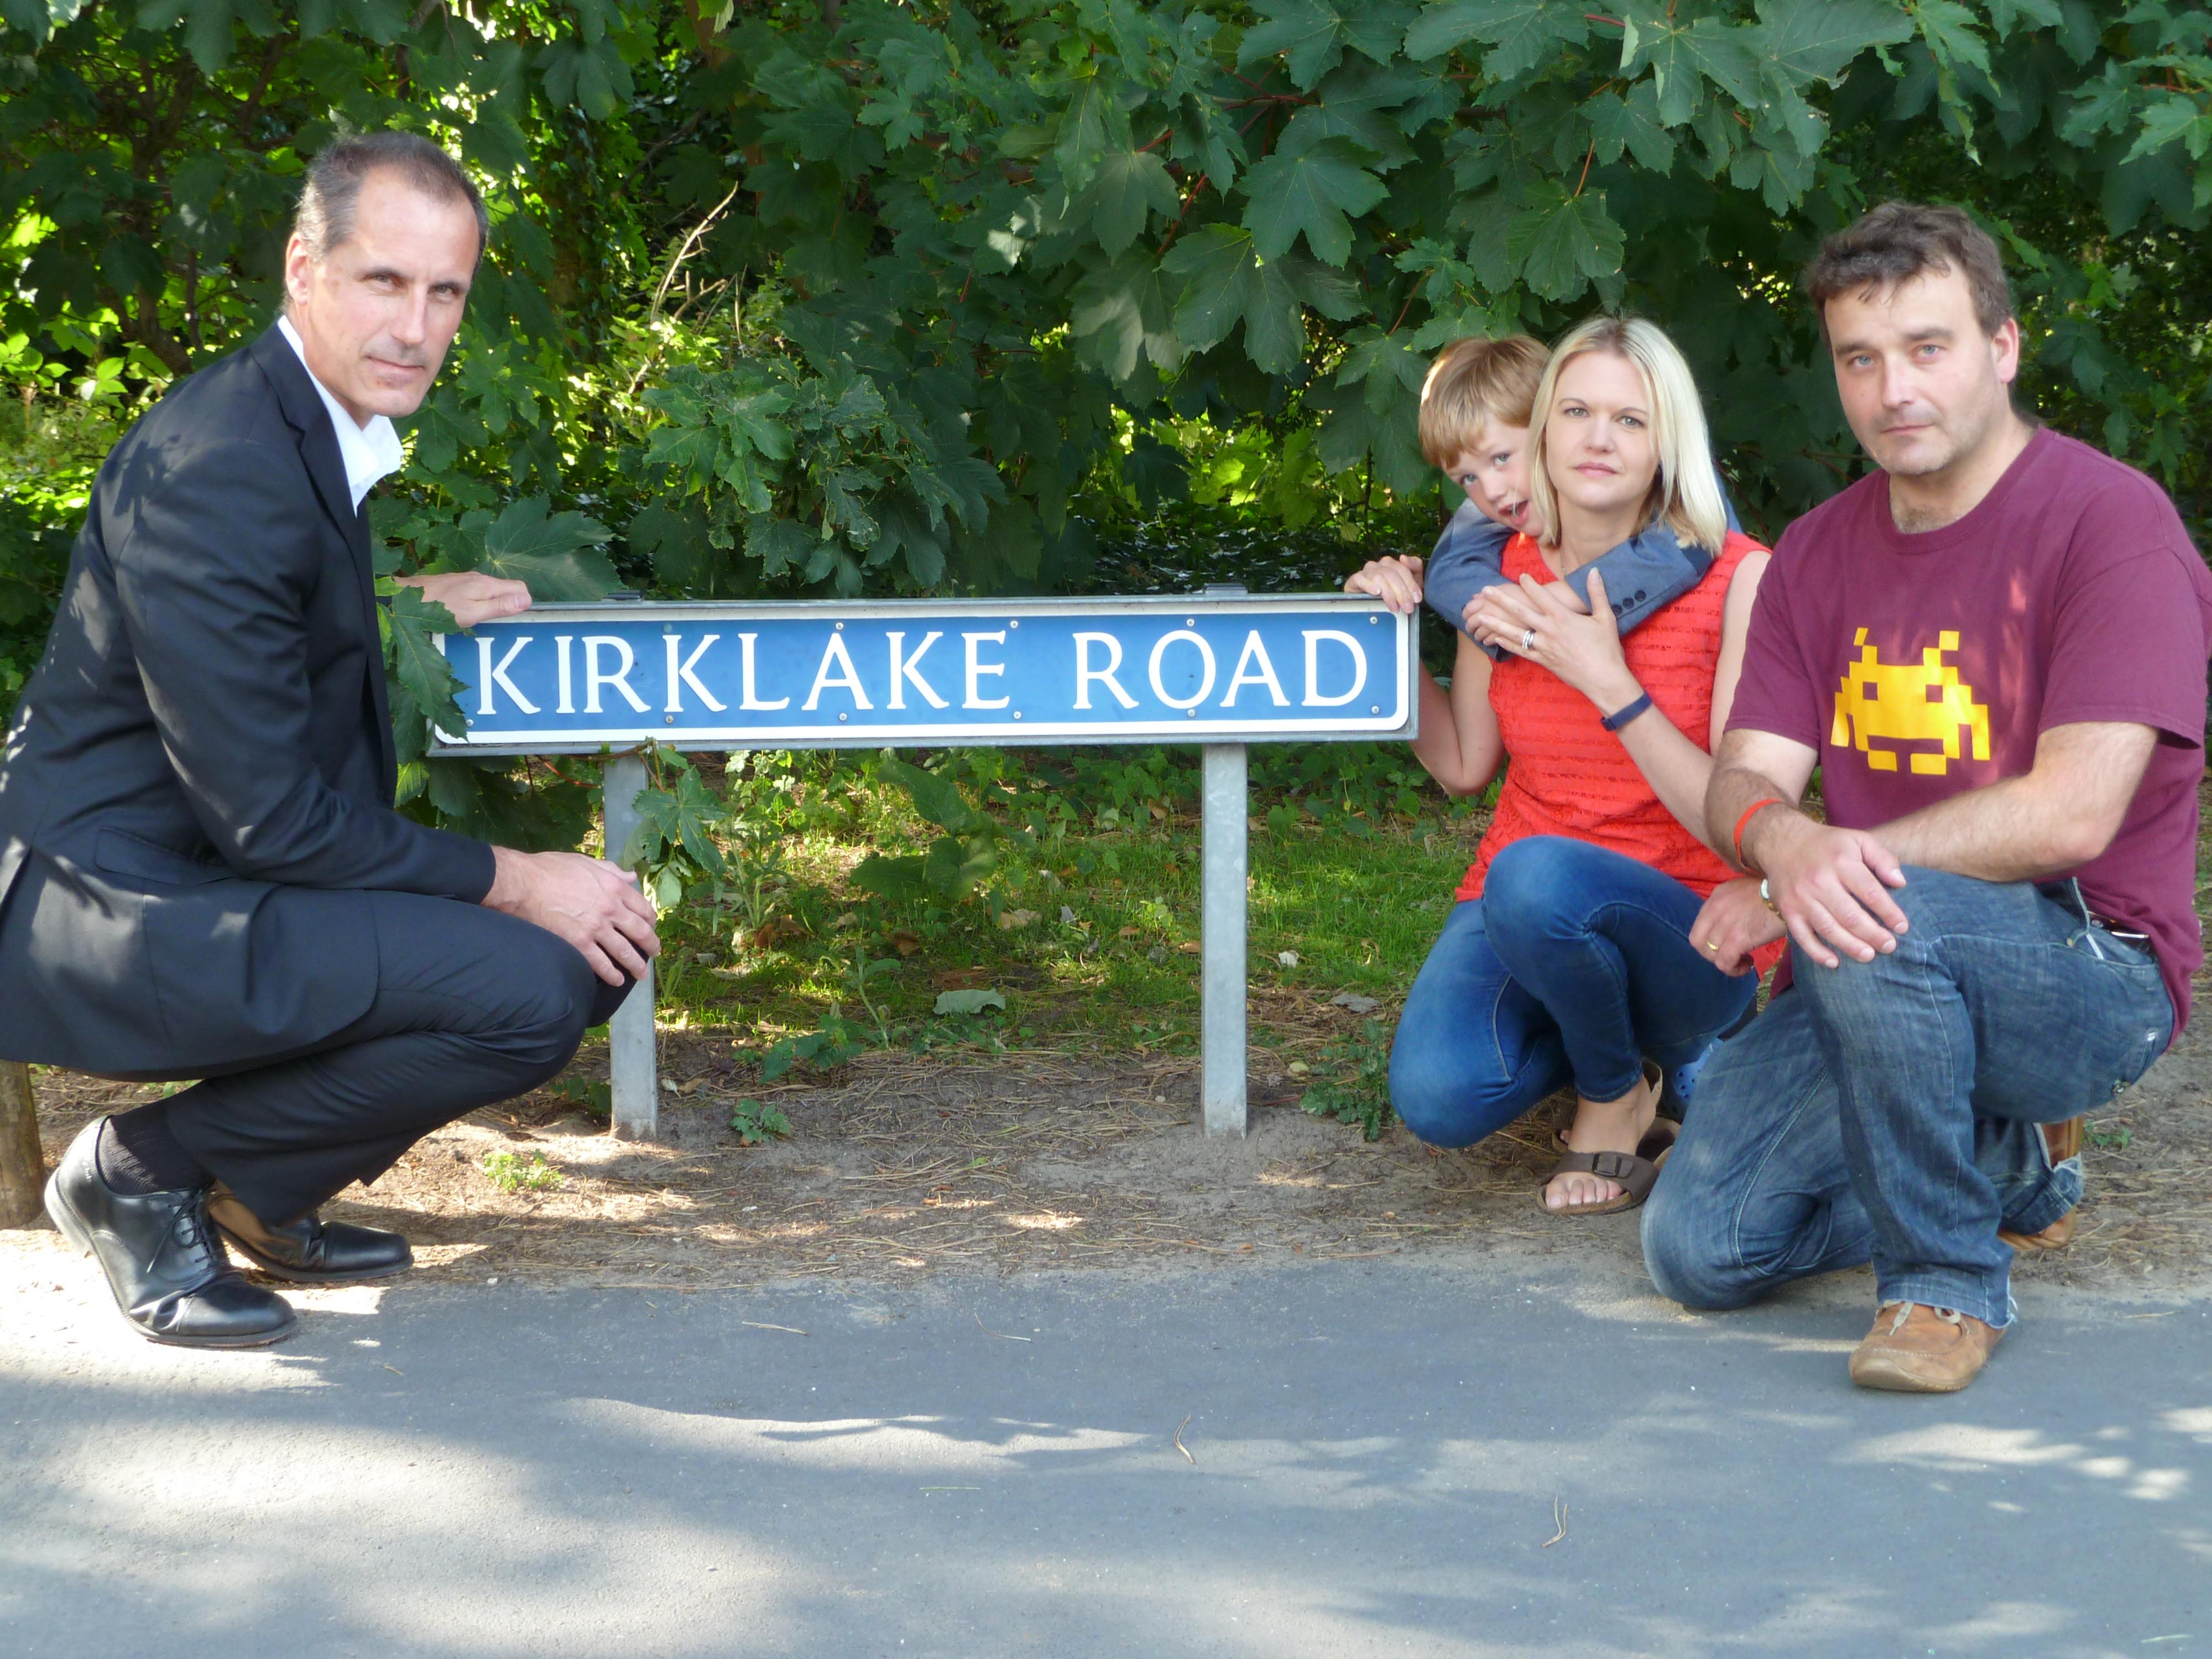 Sefton Central Labour MP Bill Esterson, Cllr Nina Killen and son Daniel, and Cllr Tim Hale on Kirklake Road, which is part of the 44 route which has been cut.